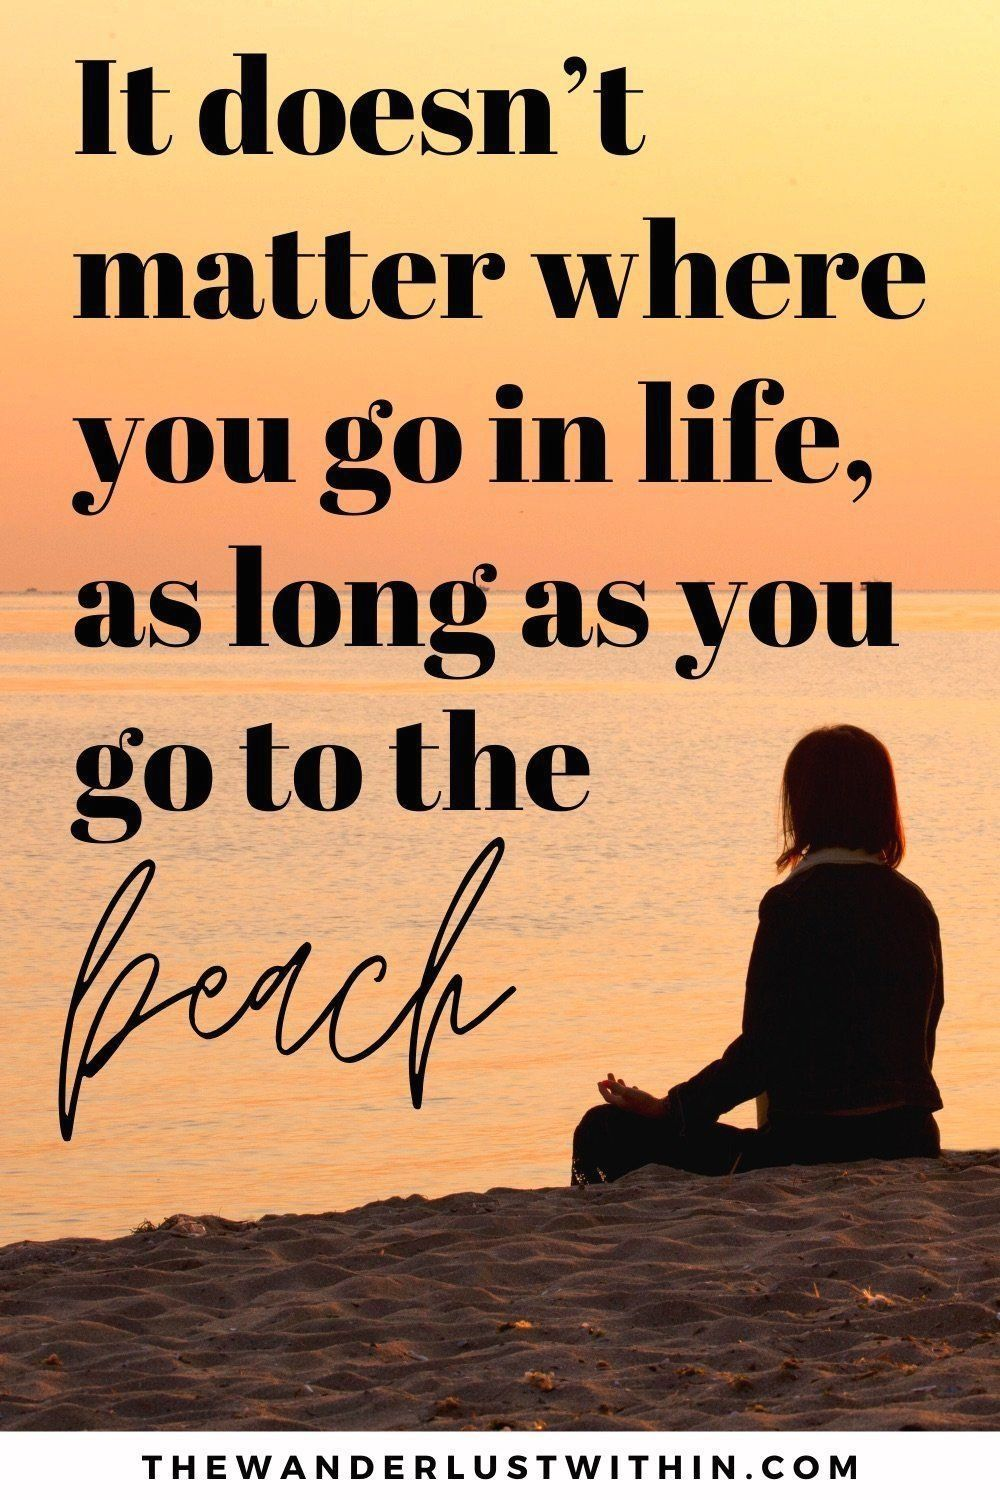 140 Beach Quotes To Instantly Brighten Your Day The Wanderlust Within Instagram About You Searching For In 2020 Beach Quotes Beach Quotes Funny Cute Beach Quotes